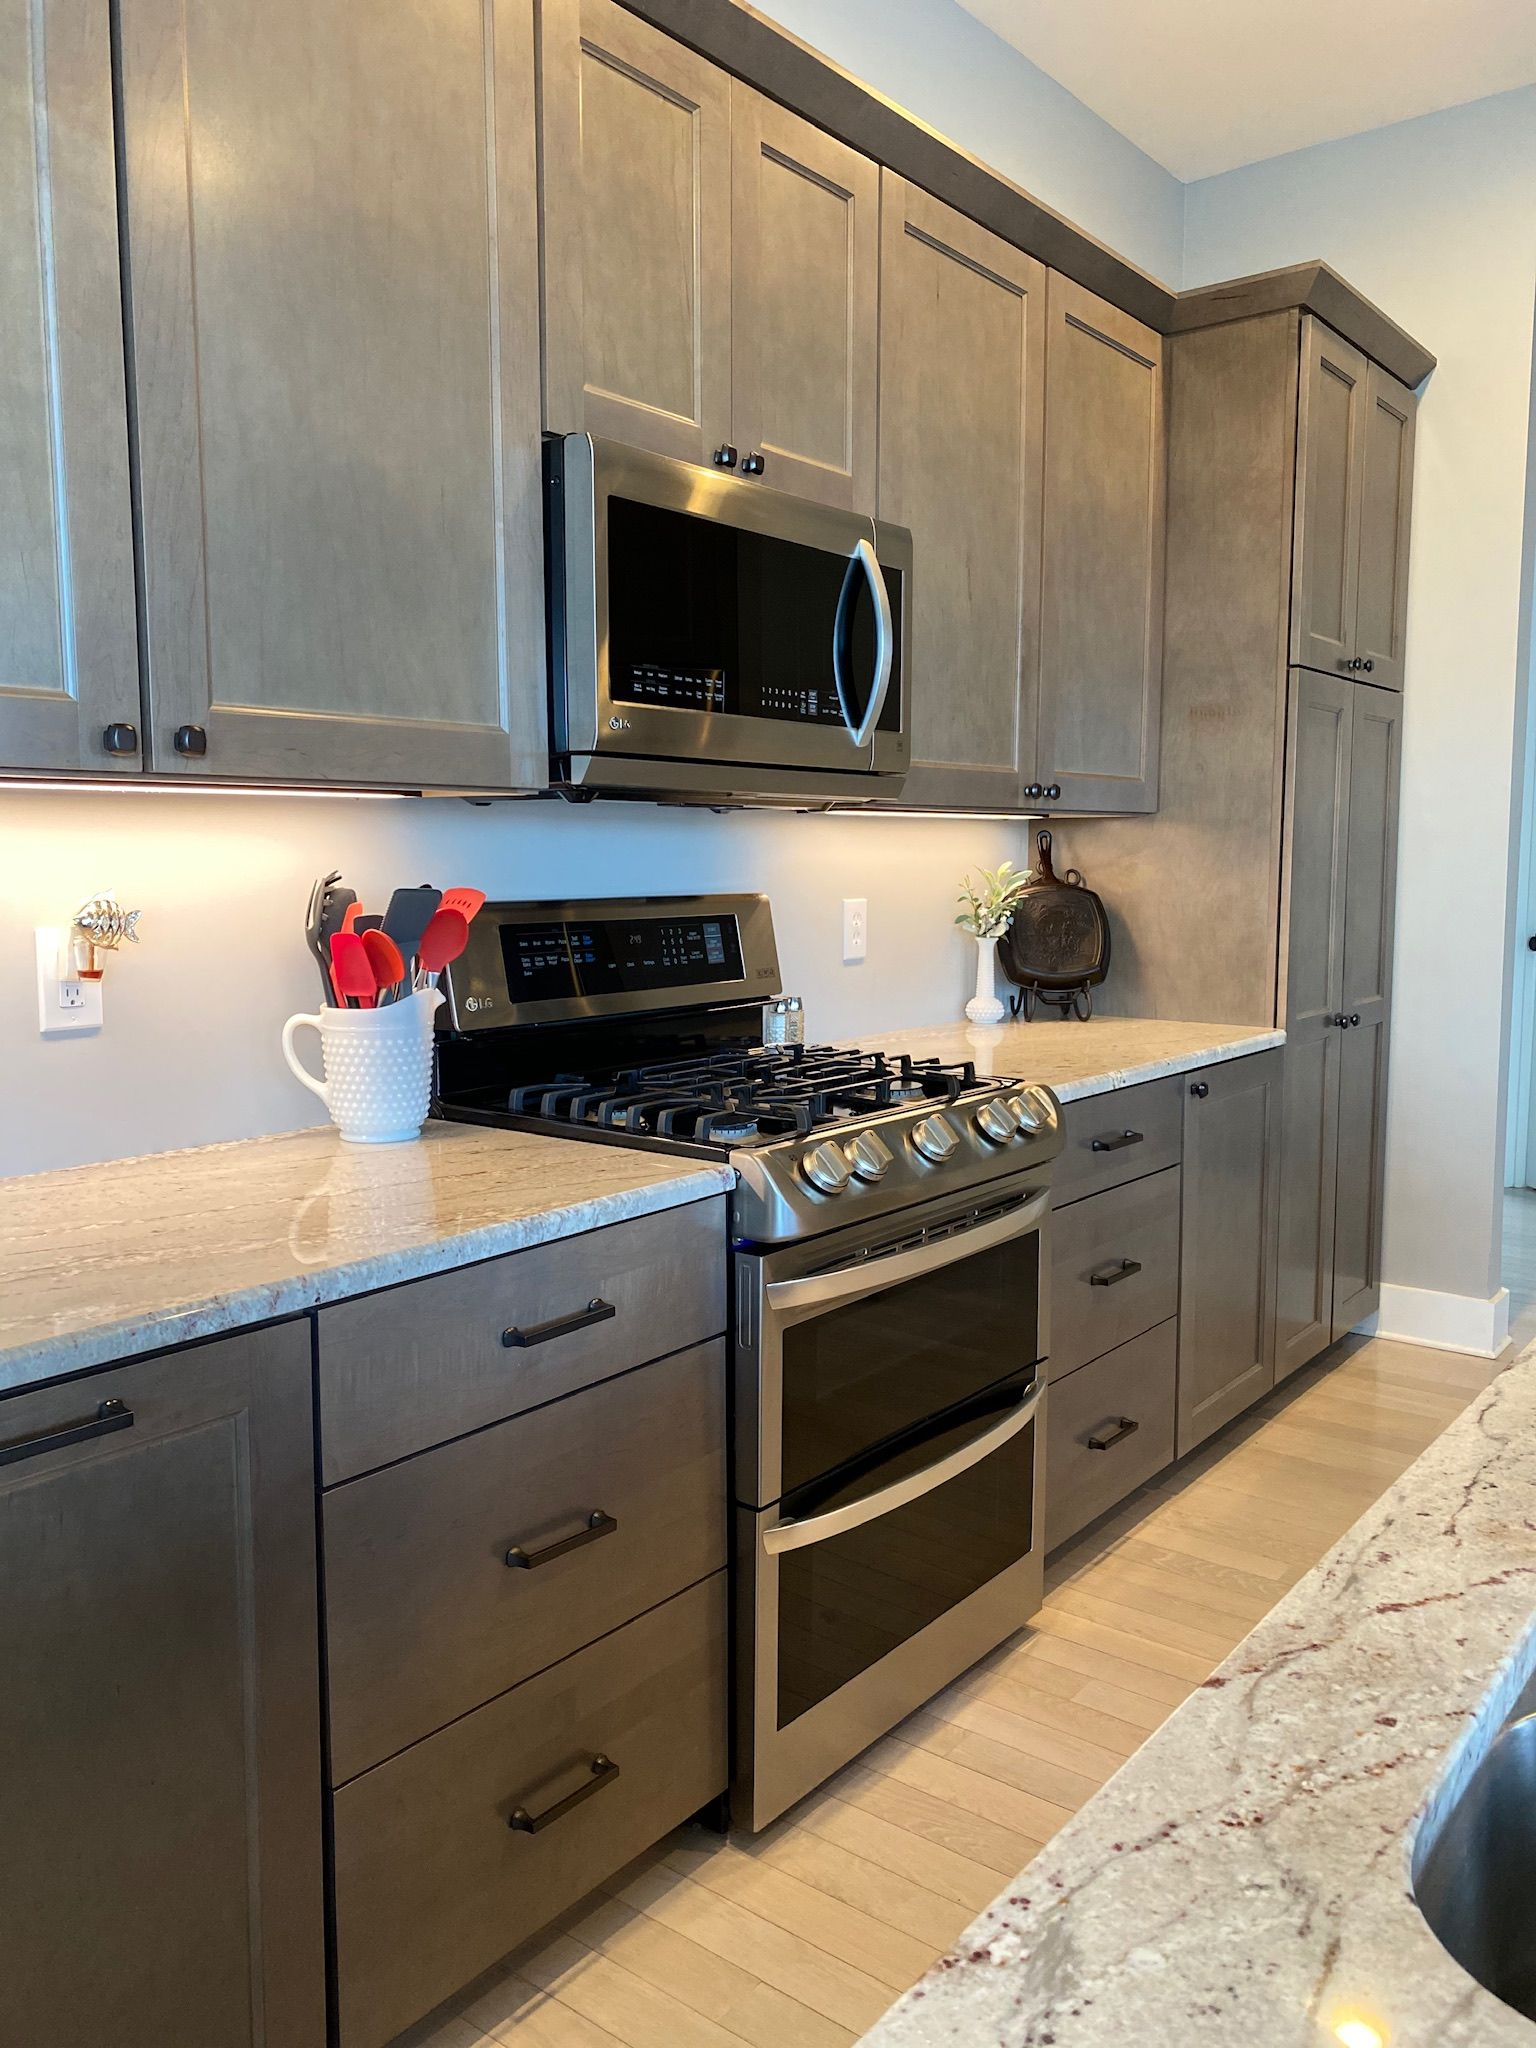 River White Granite Smoke Cabinets In 2020 River White Granite Kitchen Kitchen Cabinets